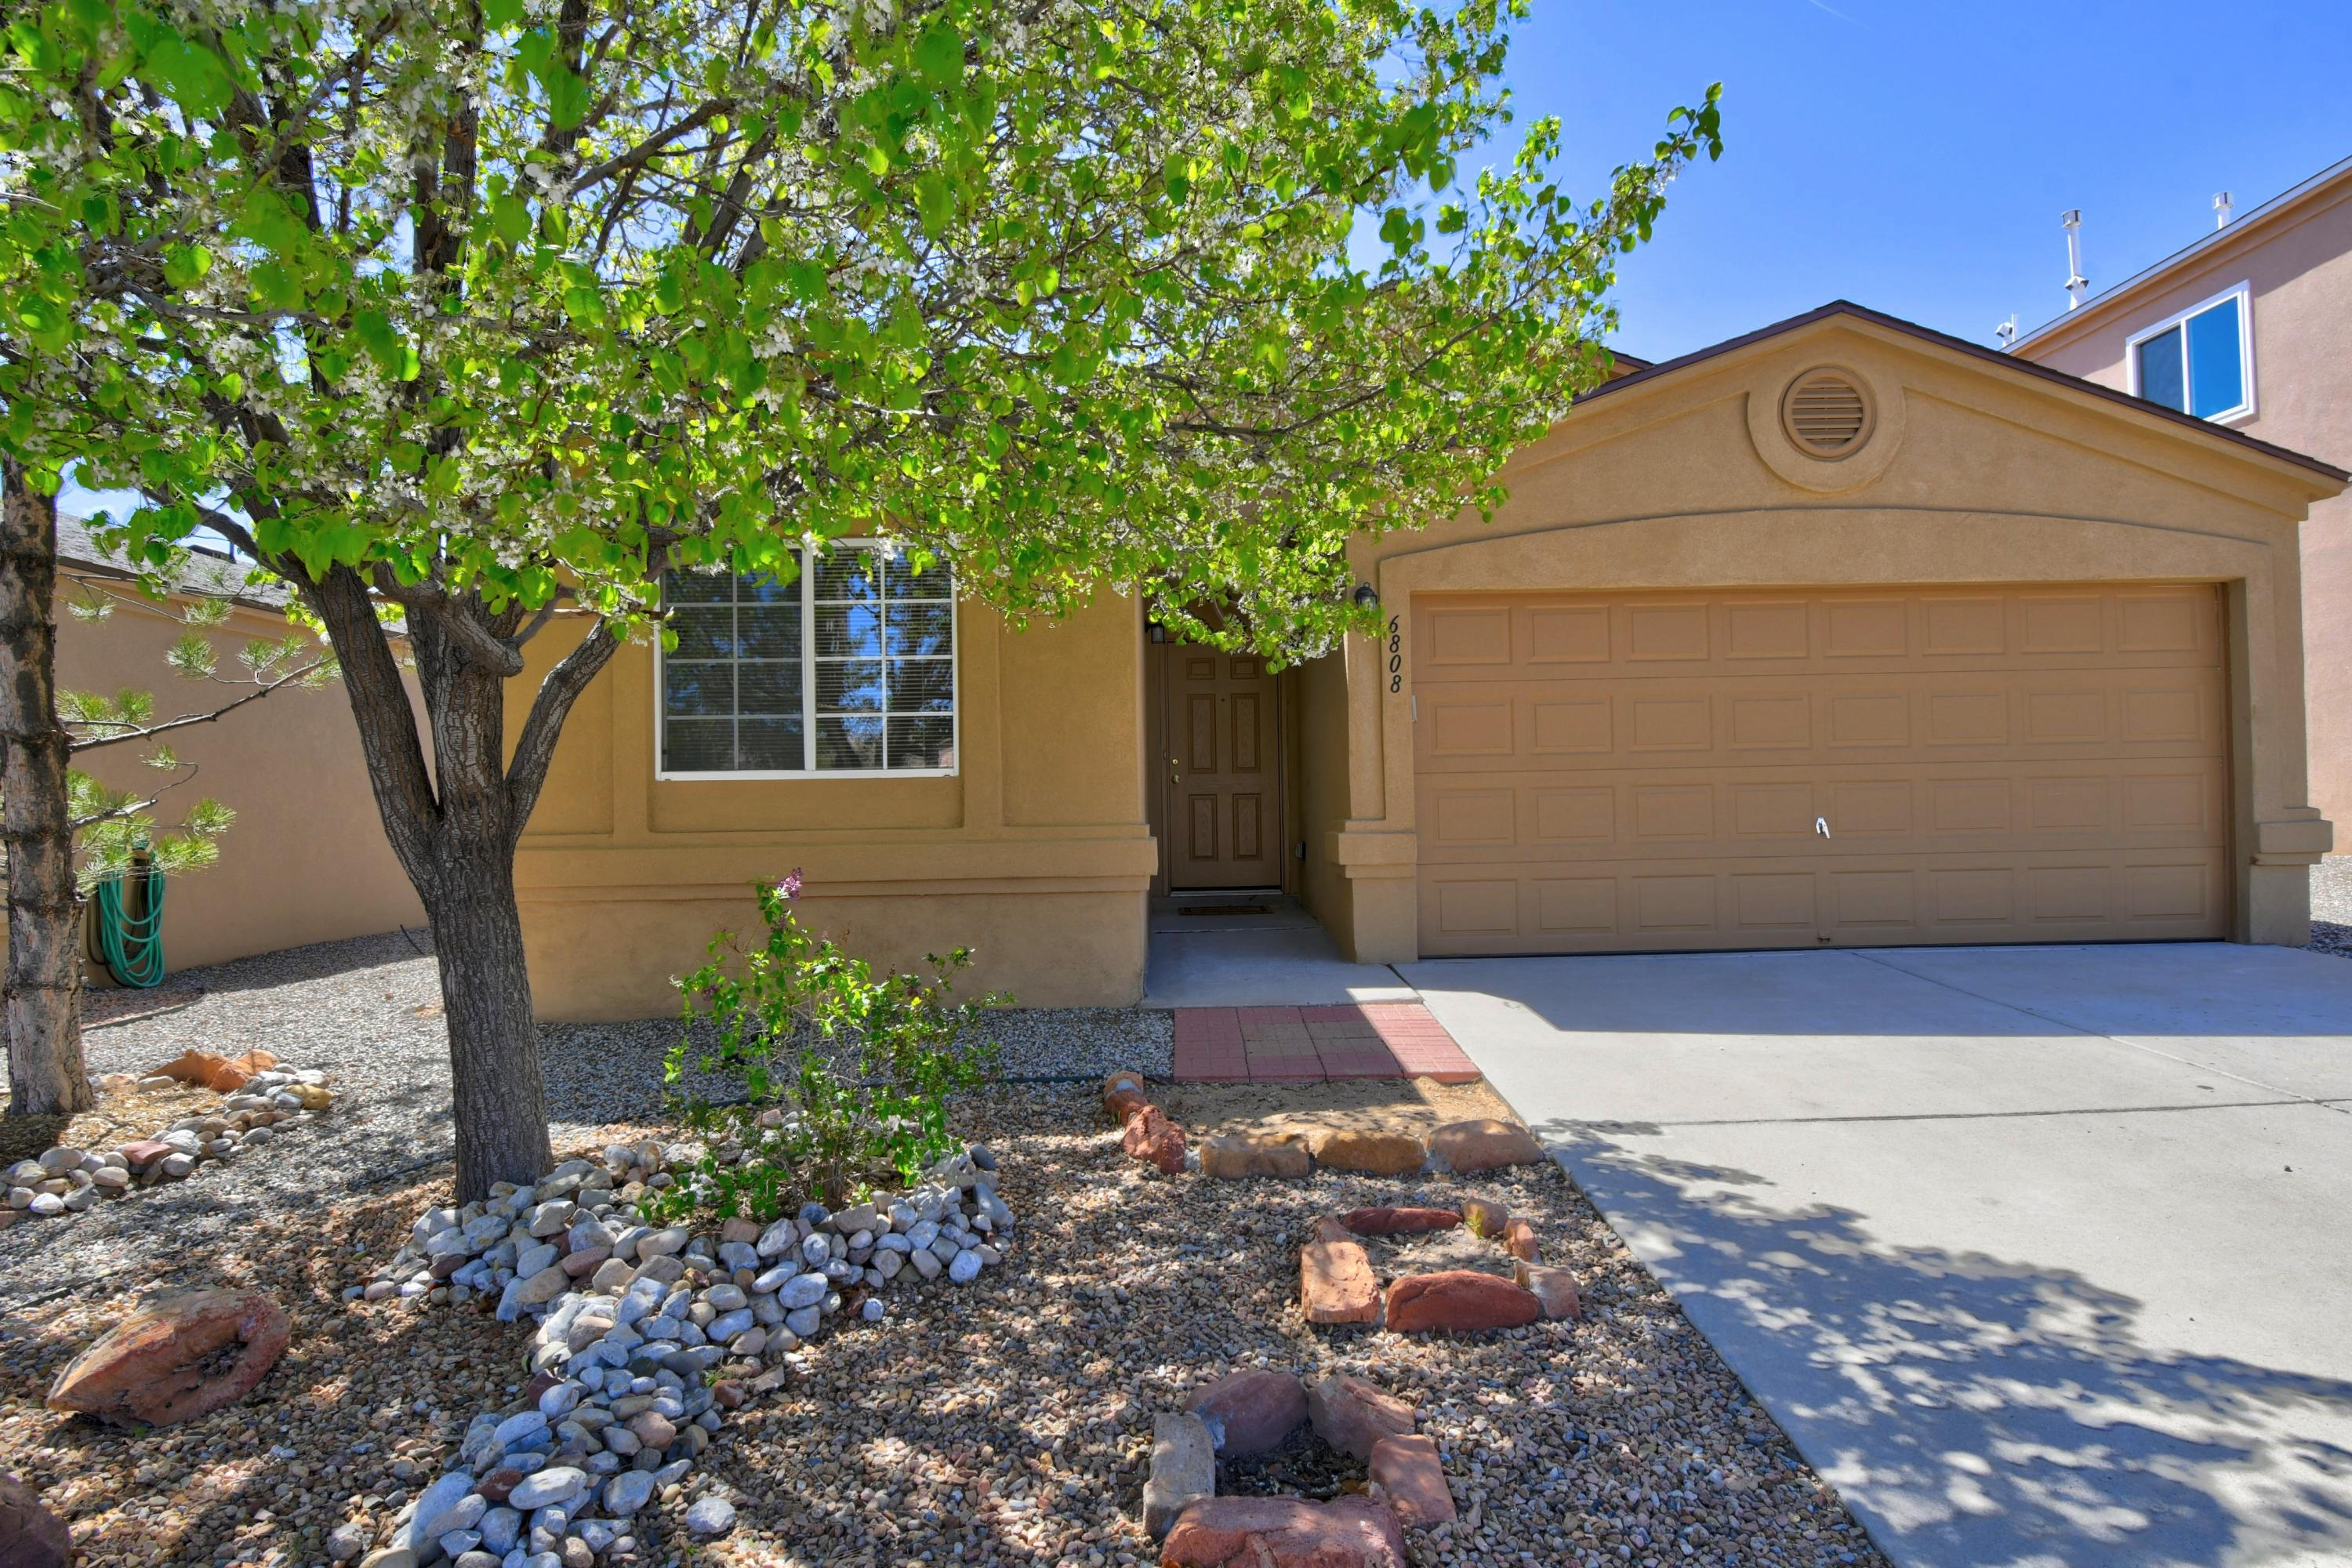 One level 4 bedroom home in Ventana Ranch!  New SS appliances - everything stays -  New Roof 2020 , New water heater 2019 and new laminate wood flooring are just a few of this homes updates.Great floor plan with natural light.  Large master and 3 additional bedrooms.  Dining area and bar in the kitchen for casual dining.Refrigerated air conditioning.This is an opportunity!